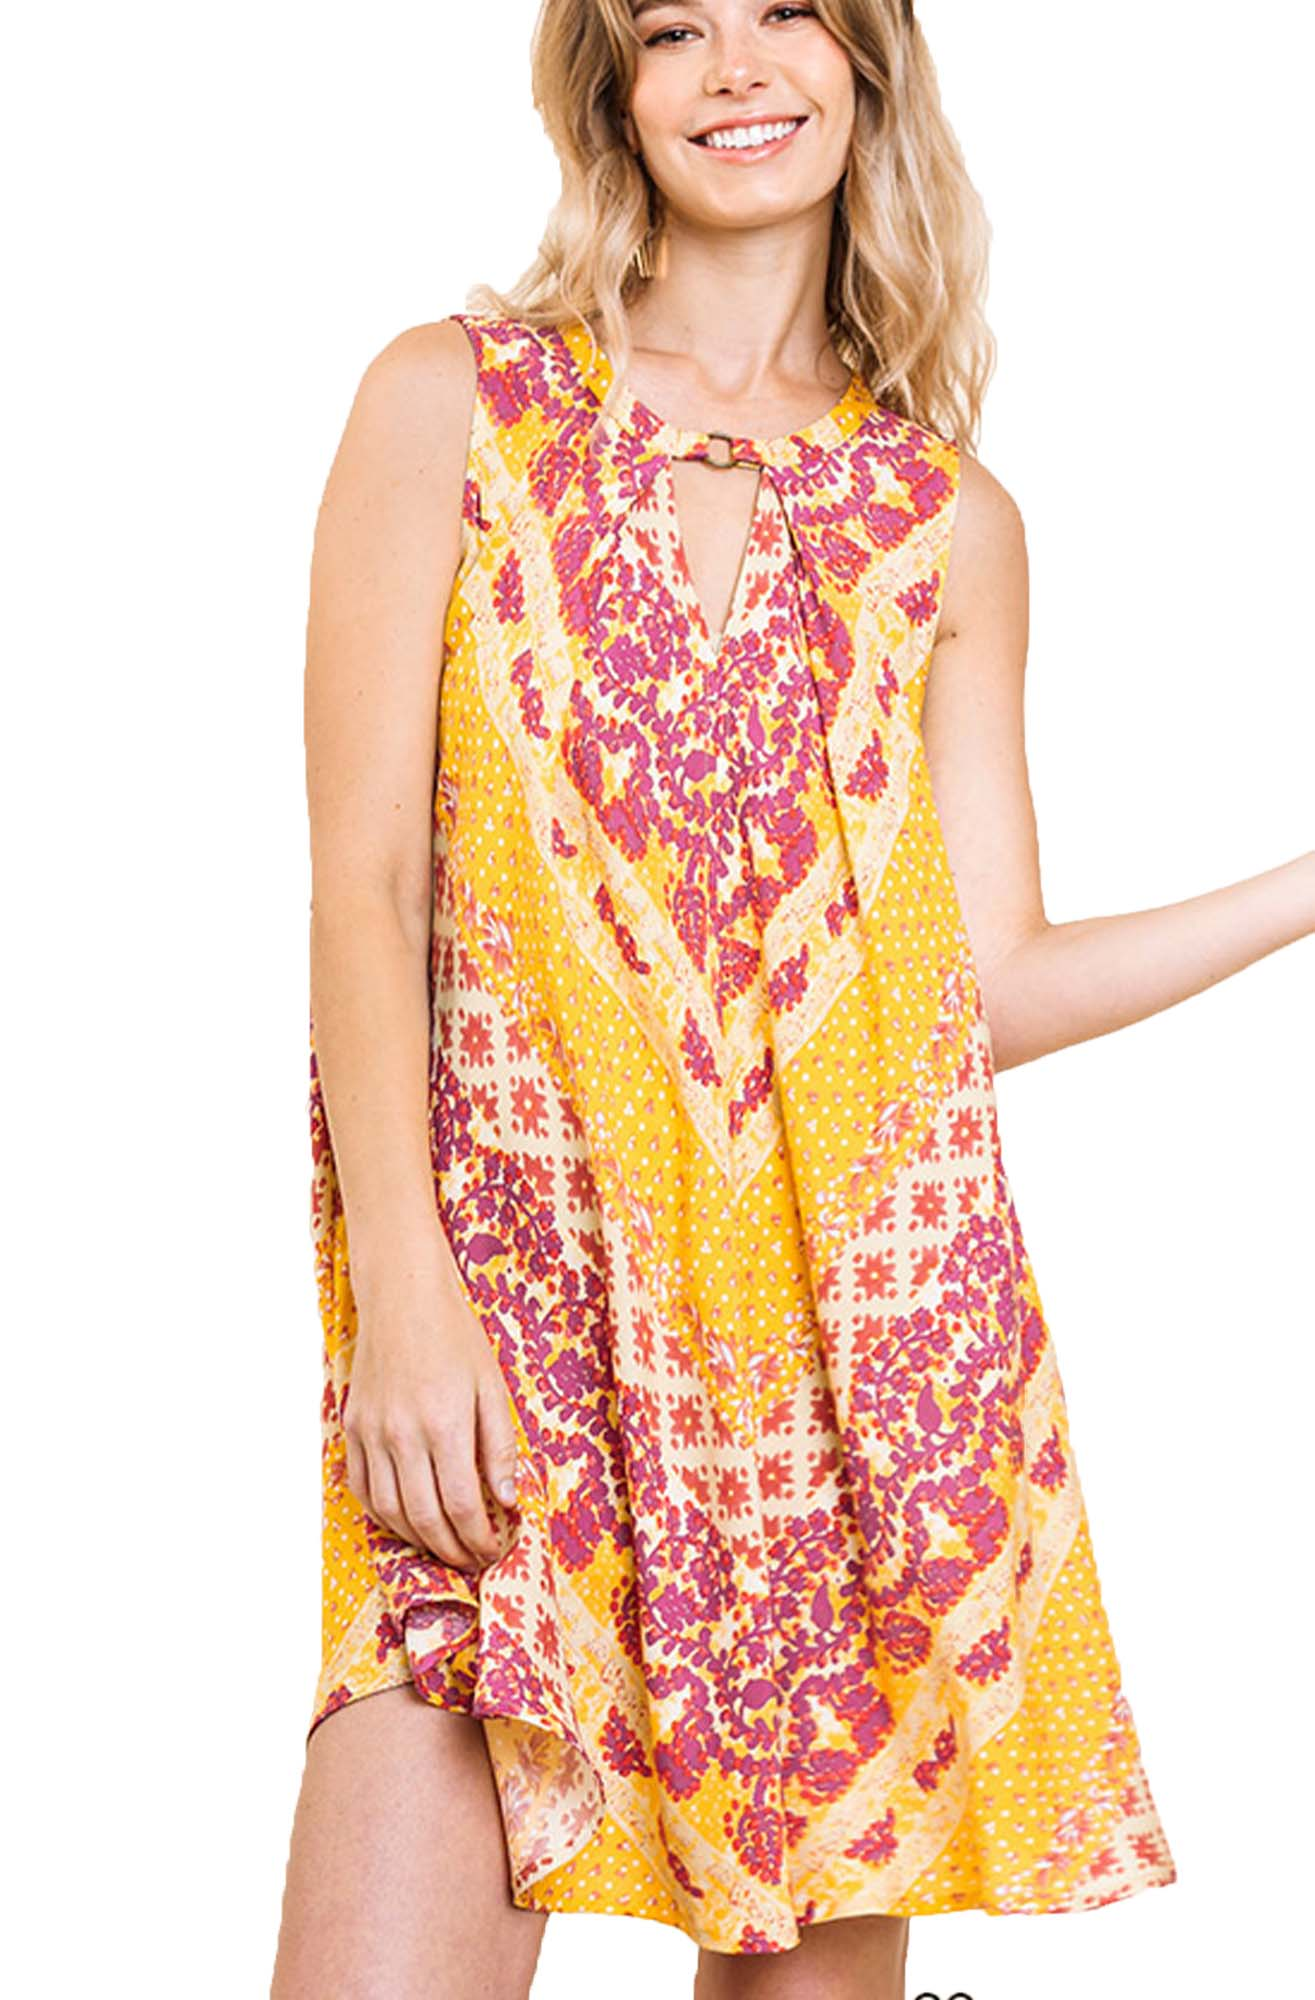 Goldenrod Pleated Multi-Print Summer Dress with Front and Back Keyholes